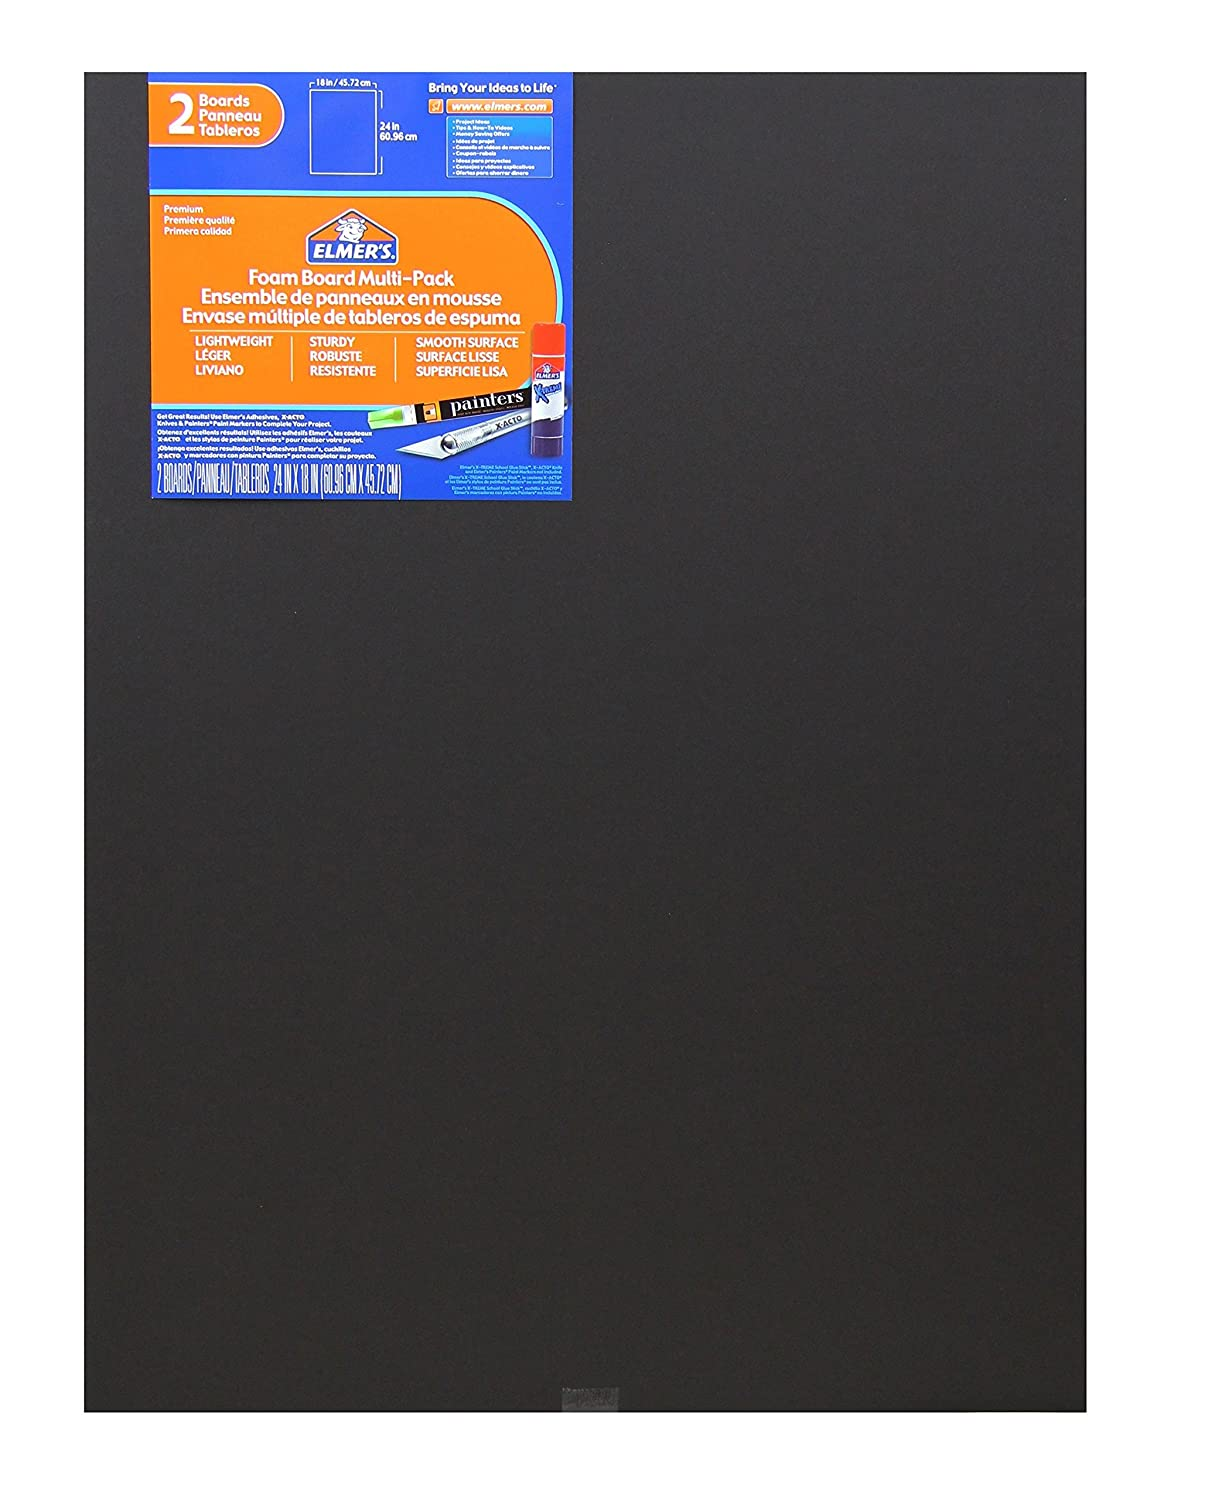 Elmer's Foam Boards, 18 x 24 Inches, Black/Black Core, 2-Count (950026) Elmer's Foam Boards Elmers